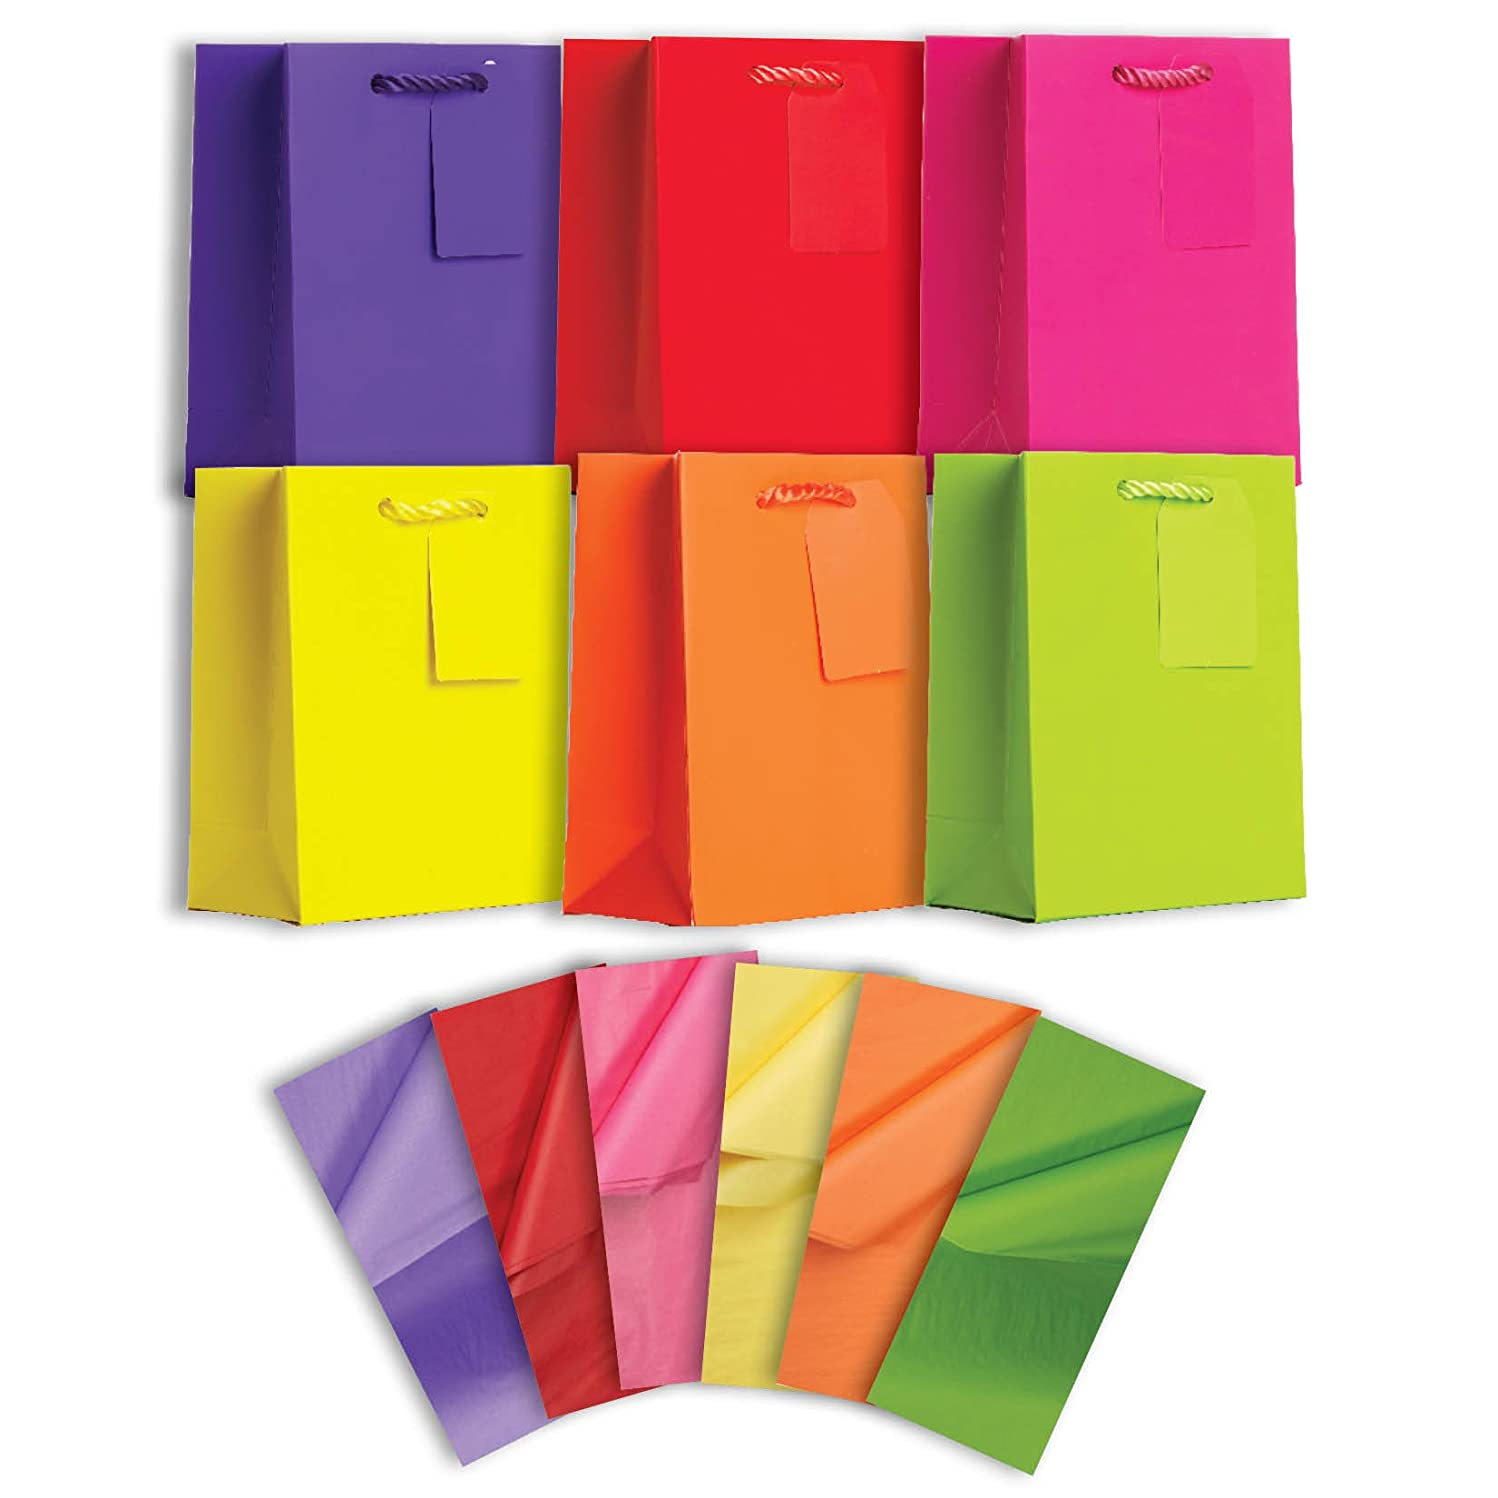 Jillson Roberts 6-Count Small All-Occasion Solid Color Gift Bags with Tissue Available in 4 Different Assortments, Bold and Bright